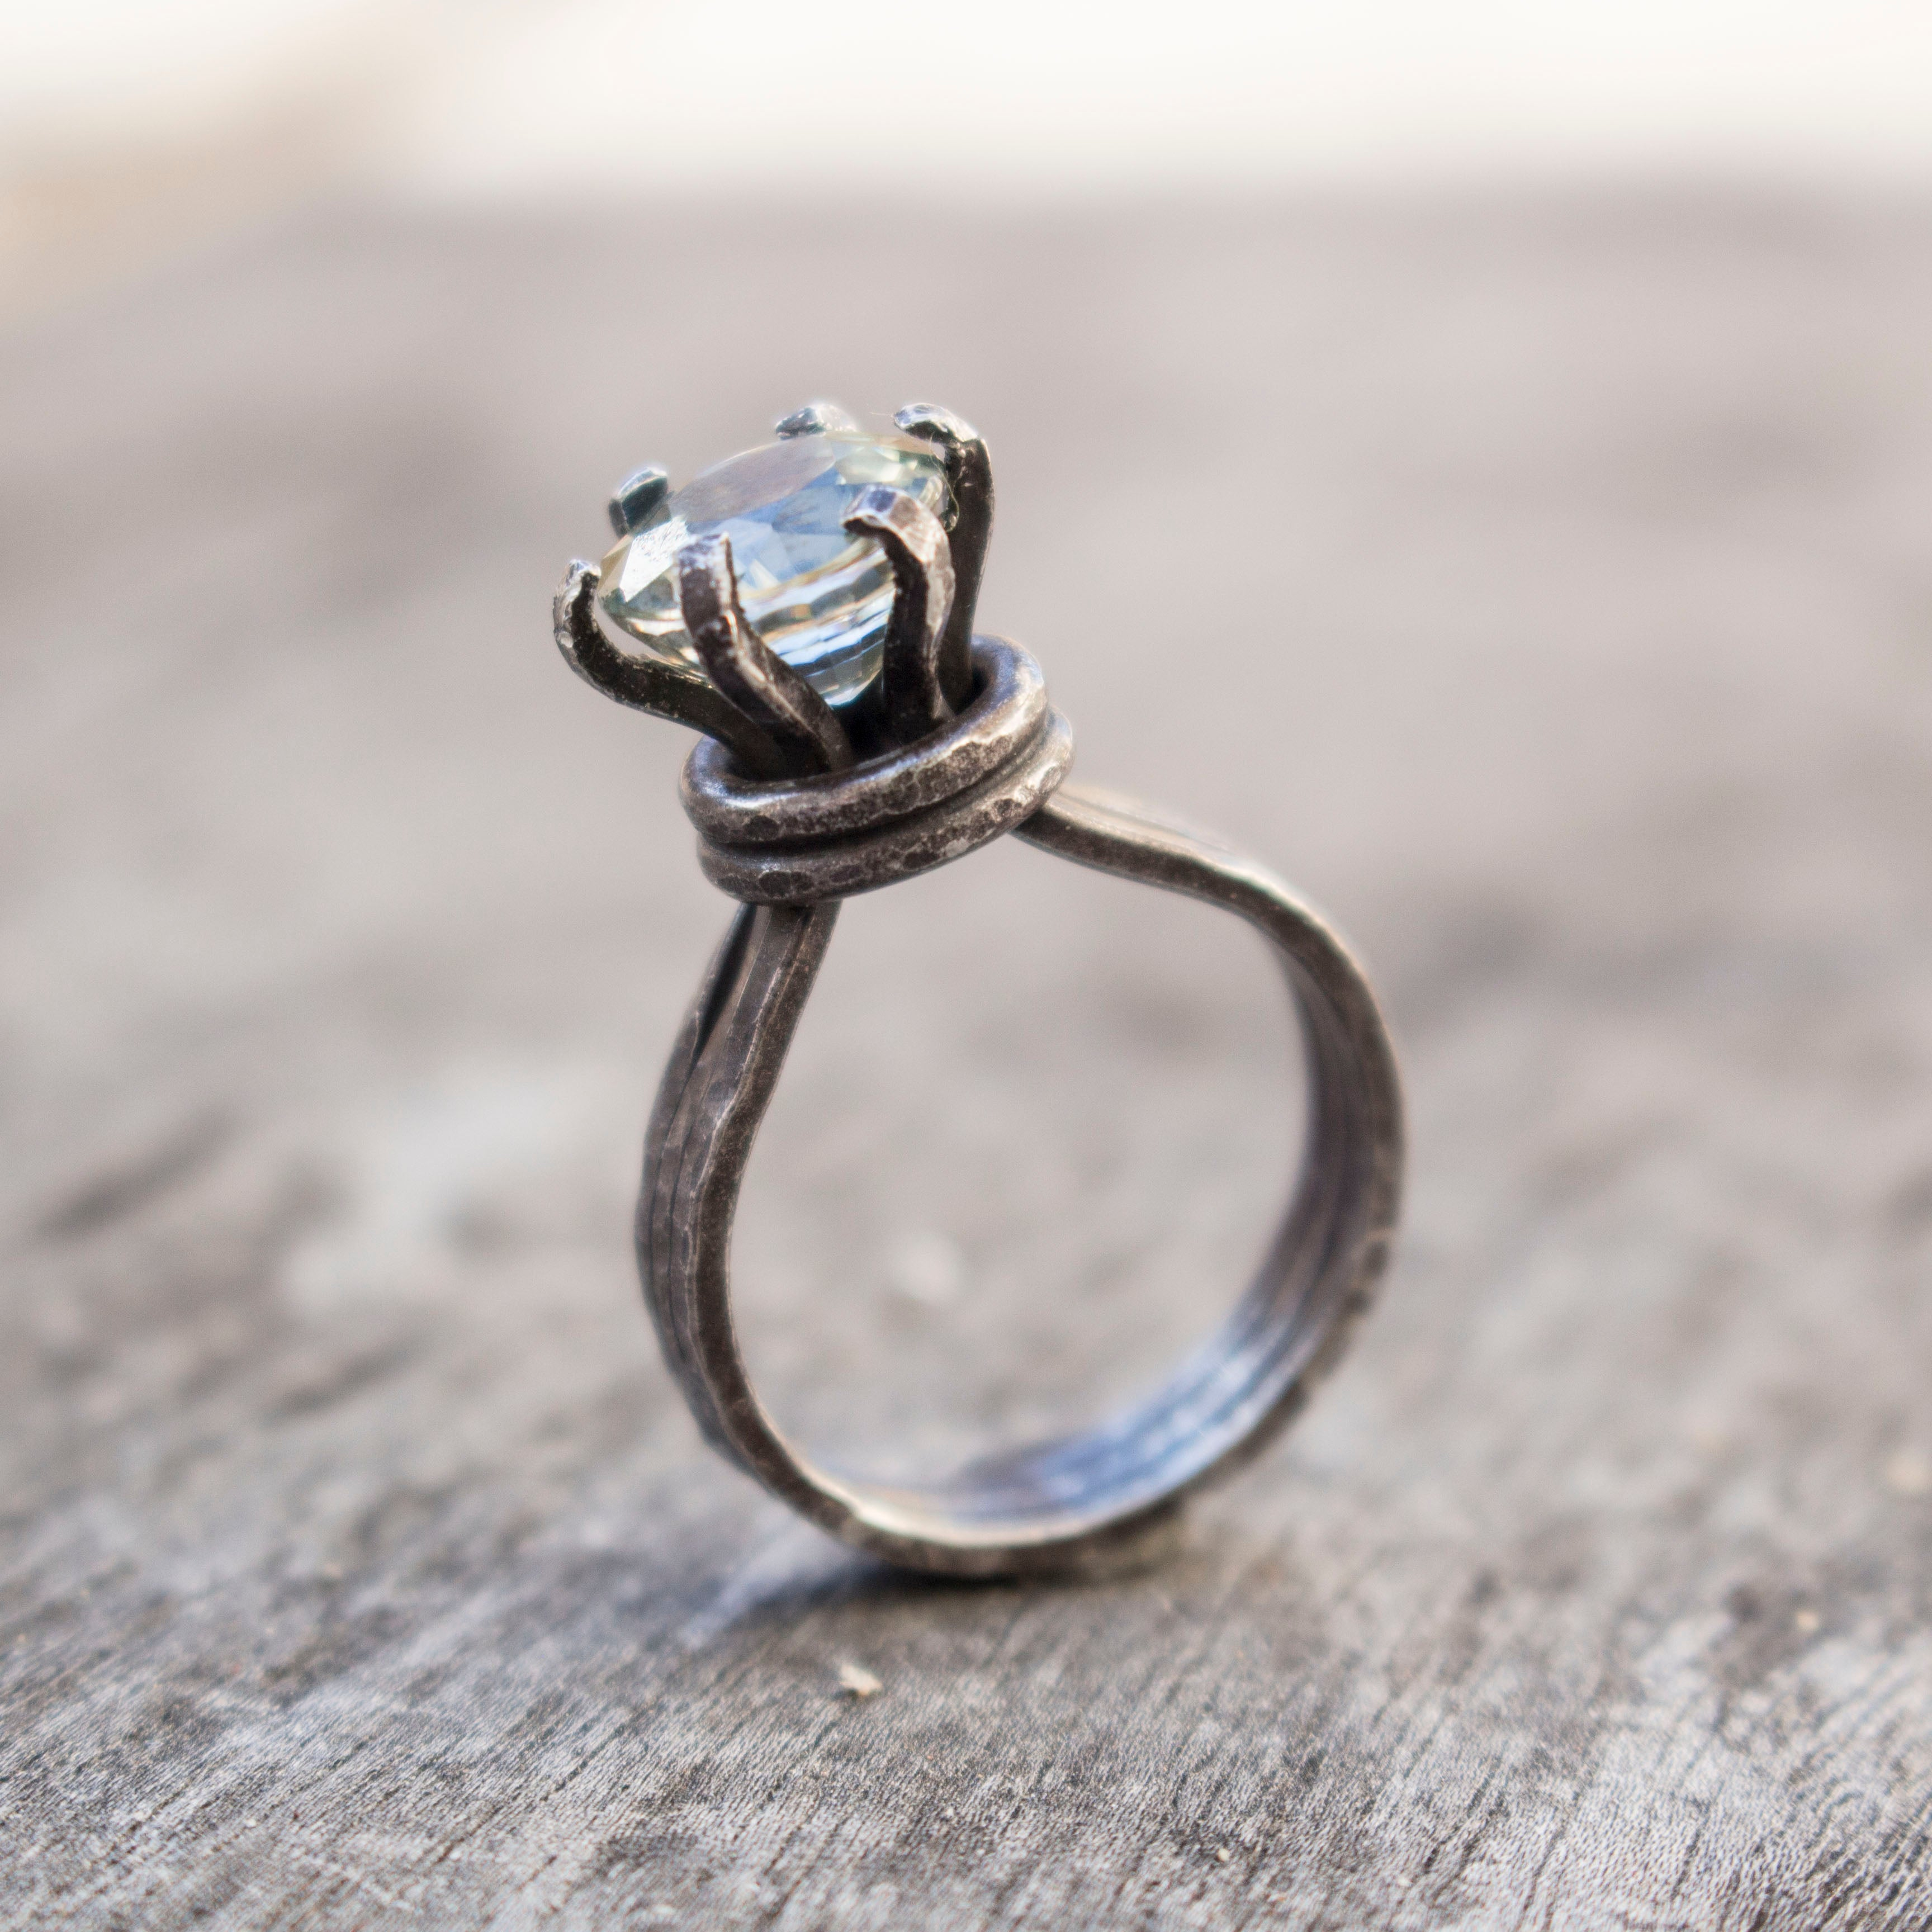 Faceted Cambodian Zircon on sterling silver ring